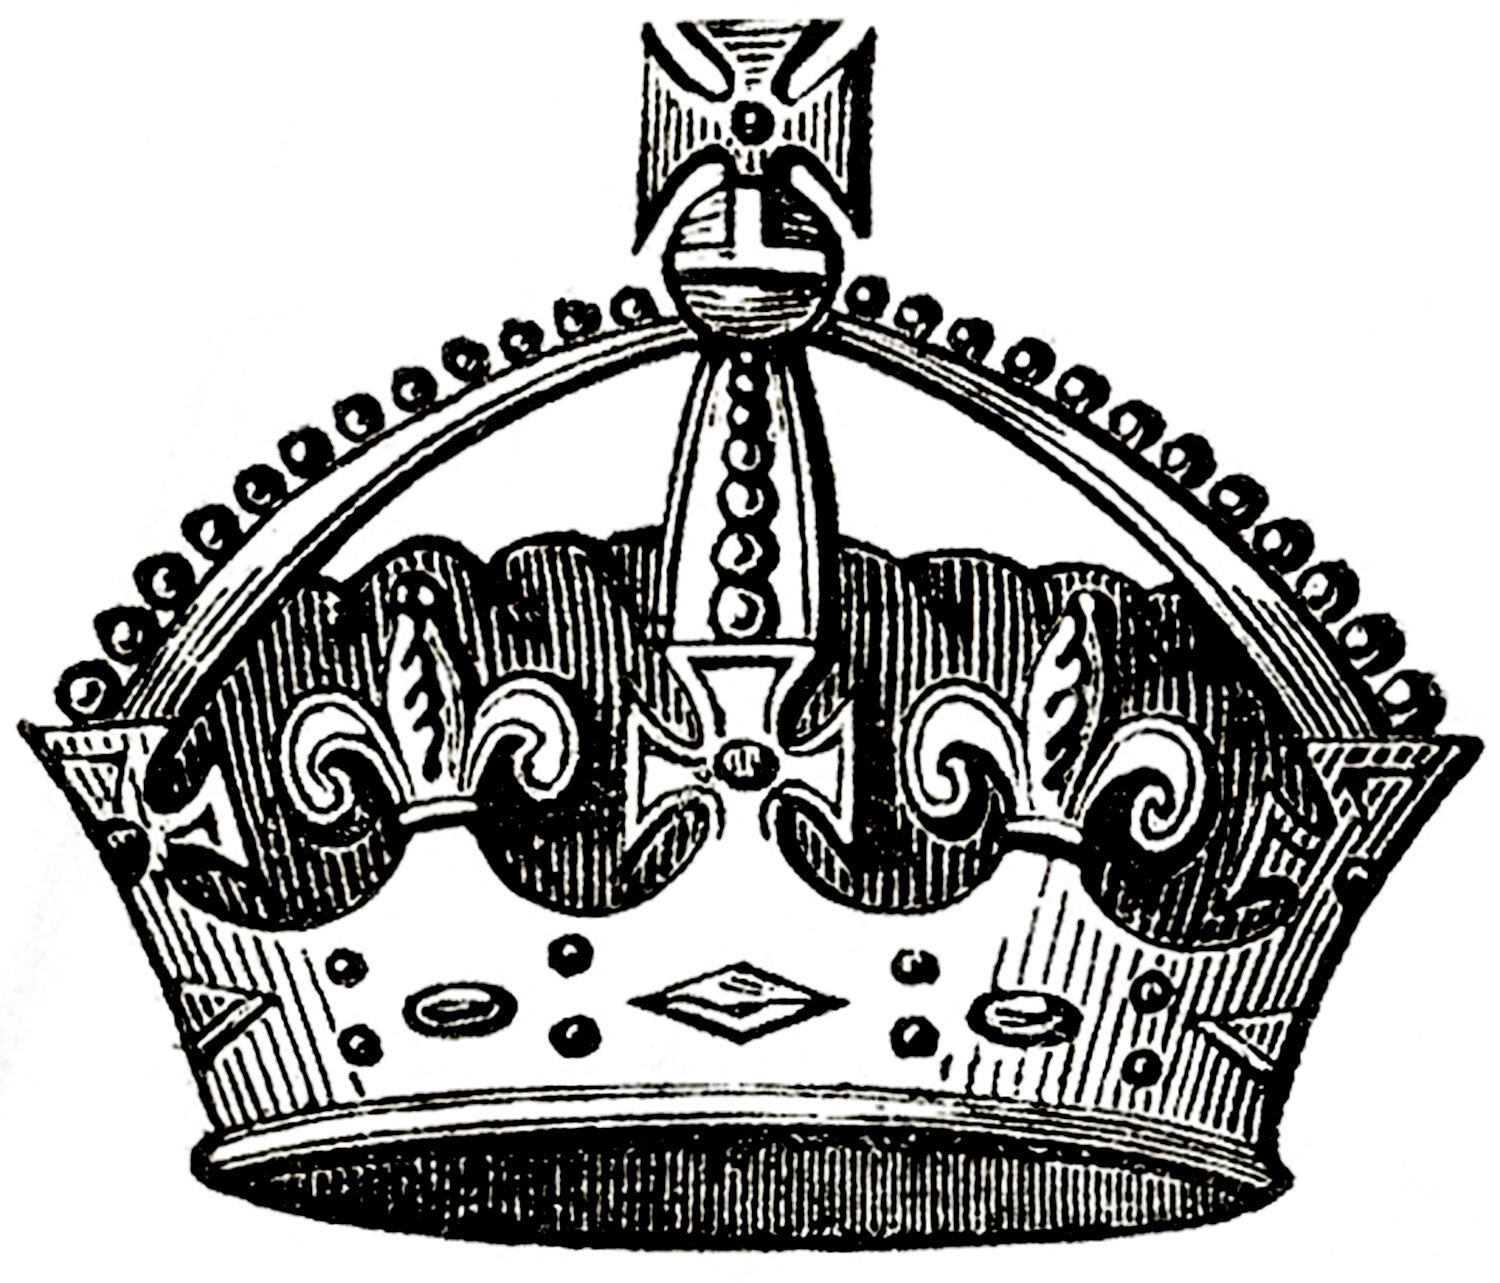 vintage crown images 4 options the graphics fairy crown clipart simple crown clipart simple